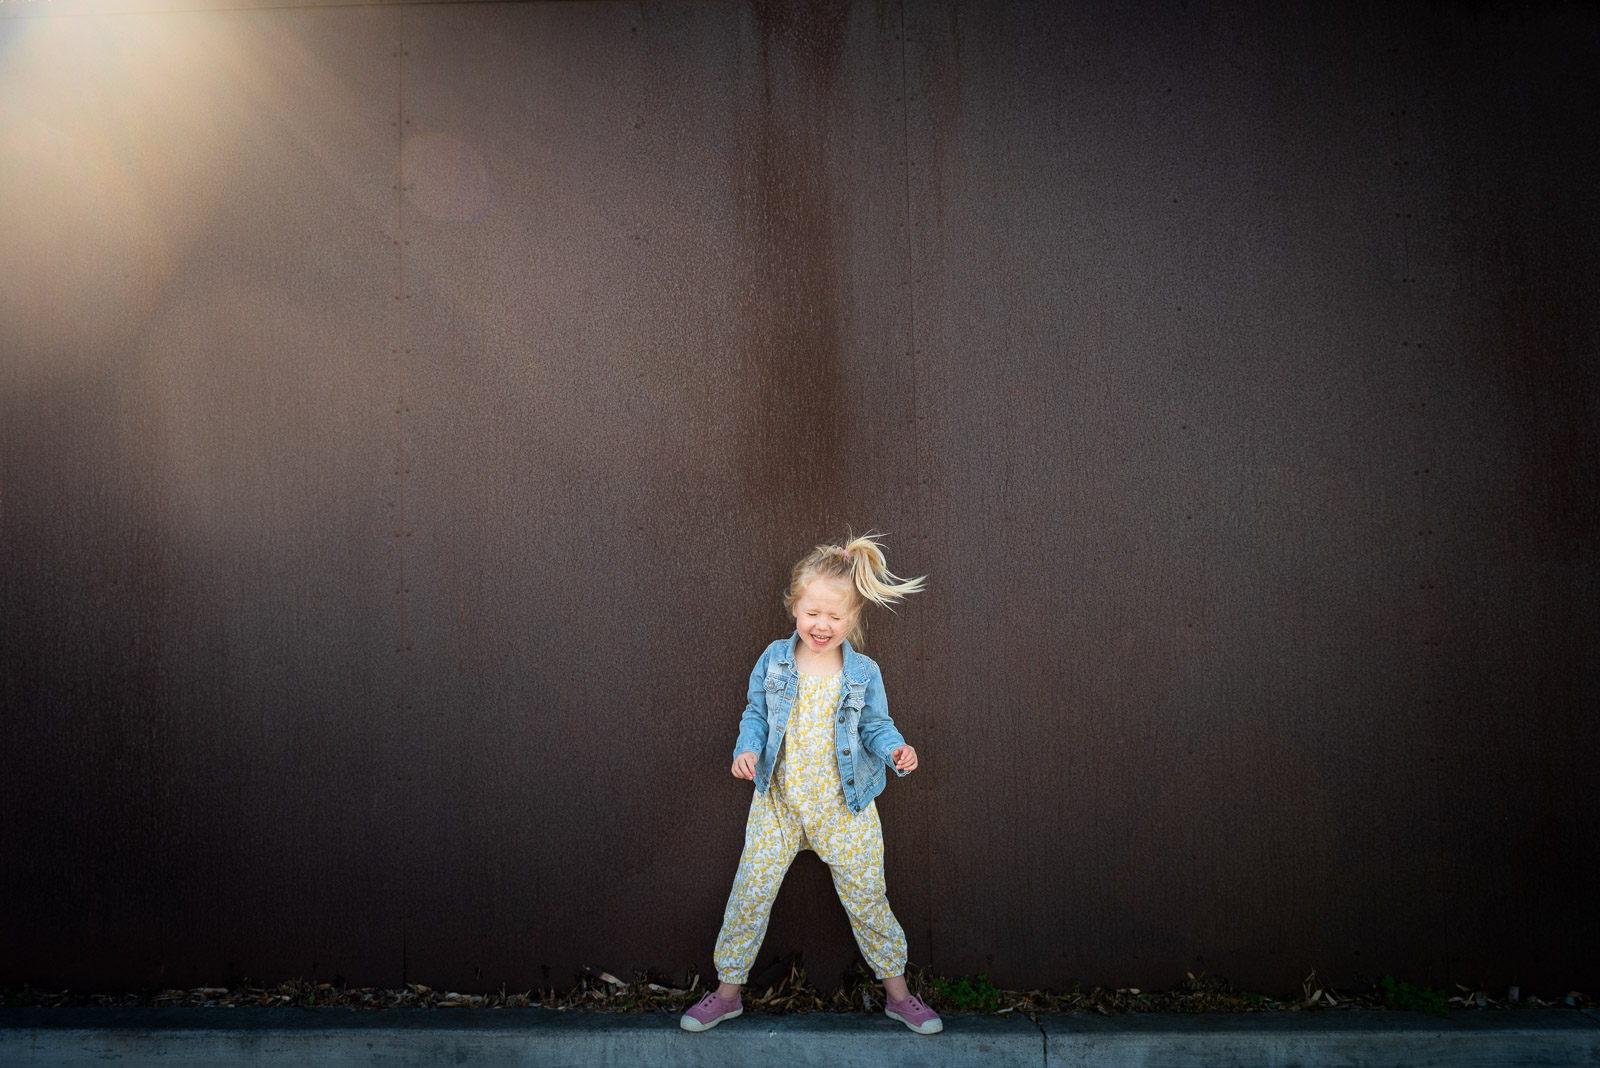 Unexpected Backdrop girl dancing in front of brown wall karlee hooper